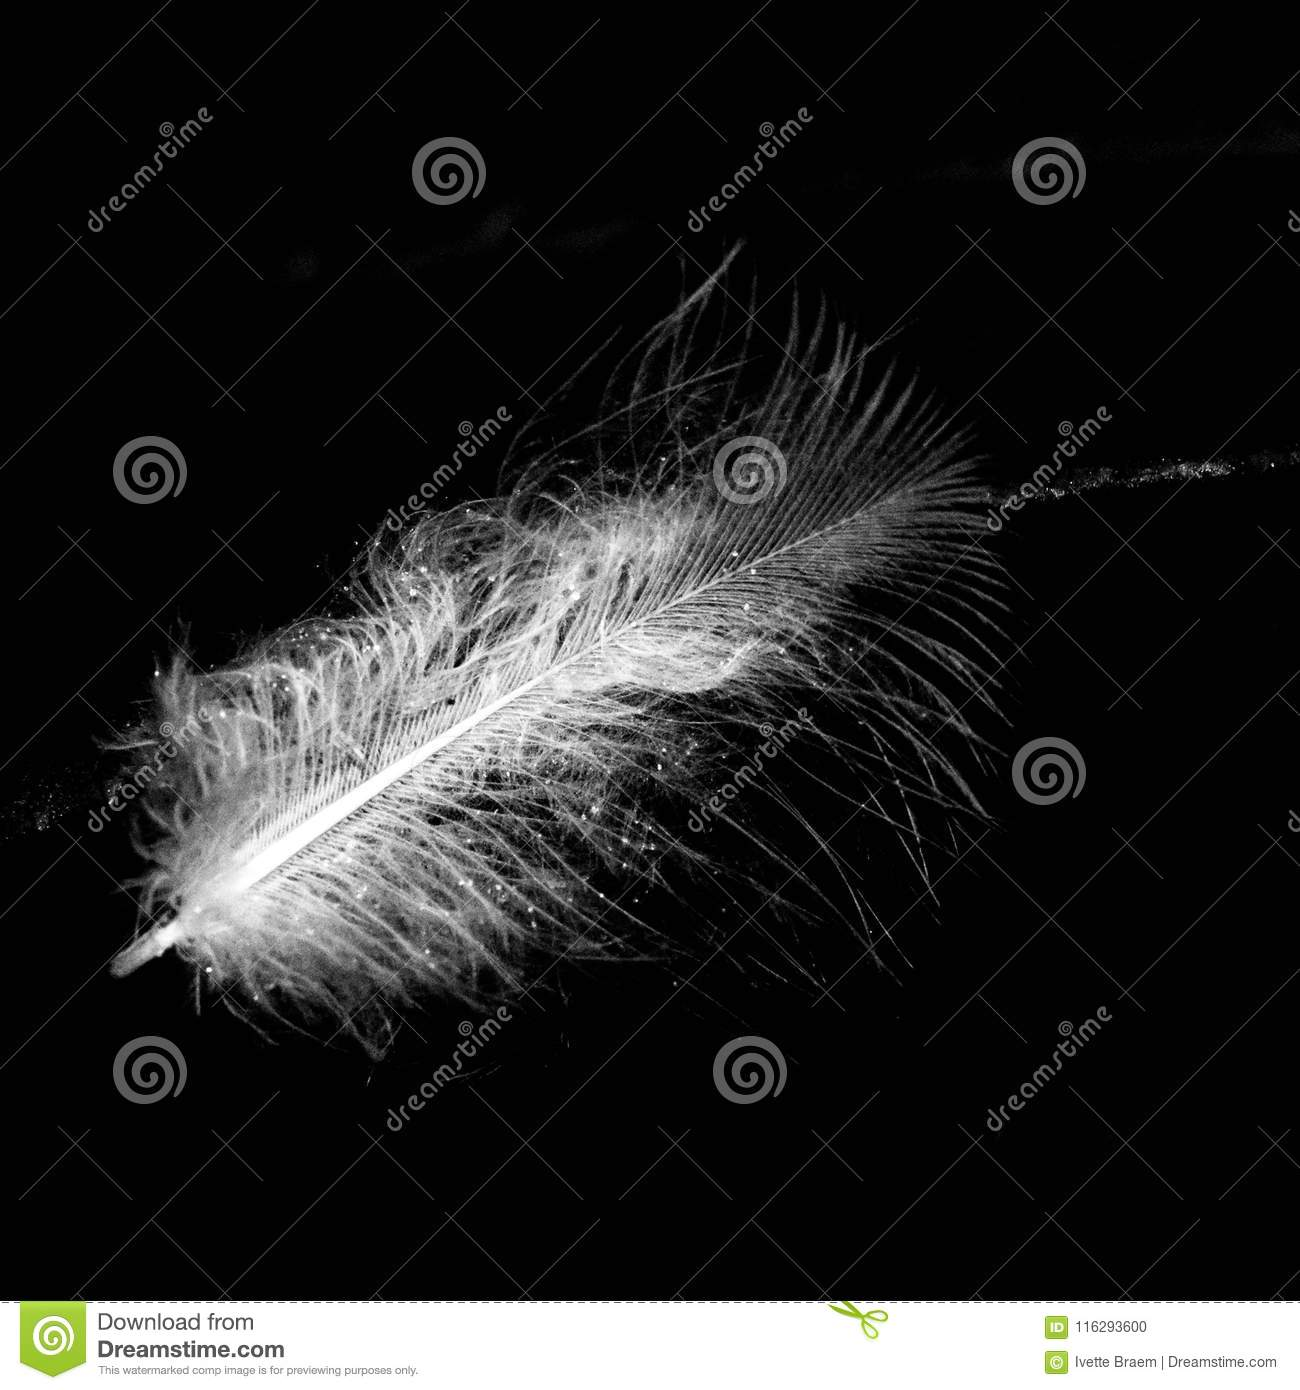 When Feathers Appear Angels Are Near Stock Photo Image Of Dreamy